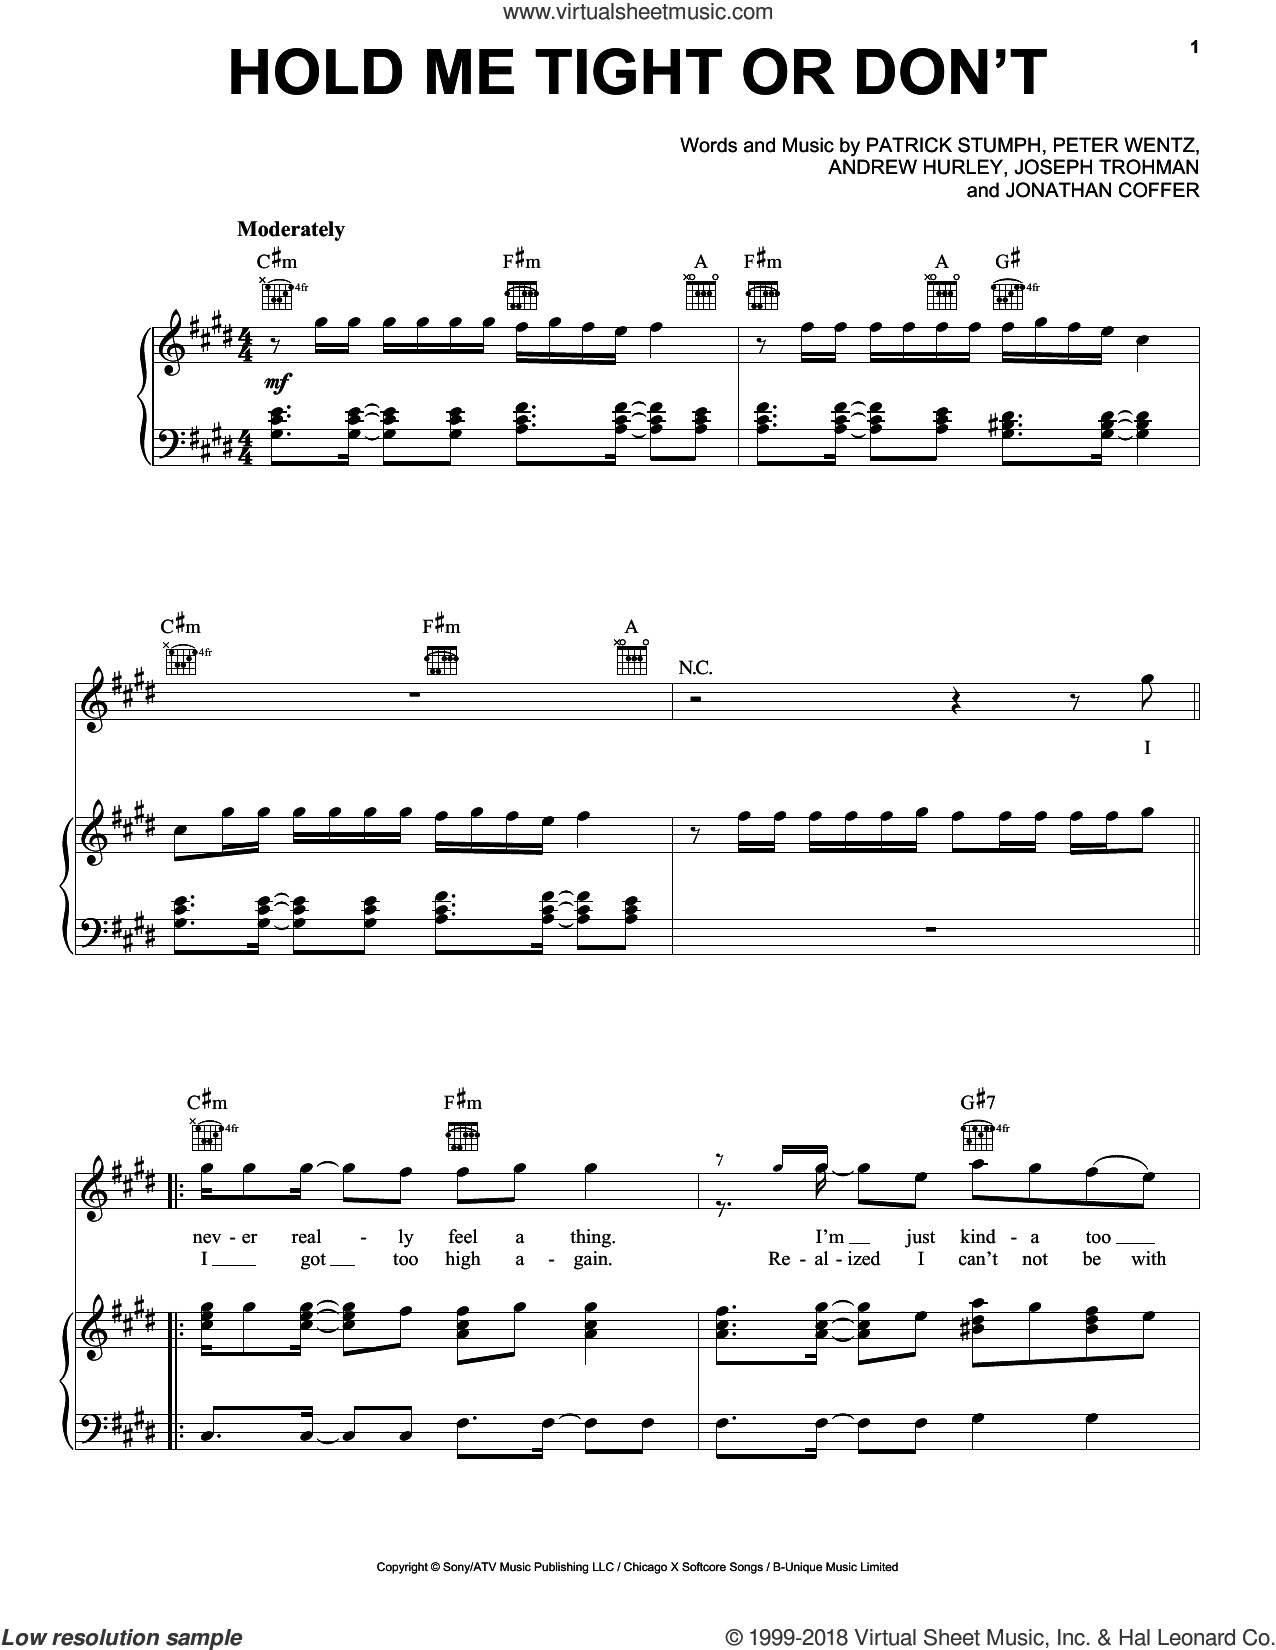 Hold Me Tight Or Don't sheet music for voice, piano or guitar by Fall Out Boy, Andrew Hurley, Jonathan Coffer, Joseph Trohman, Patrick Stumph and Peter Wentz, intermediate skill level